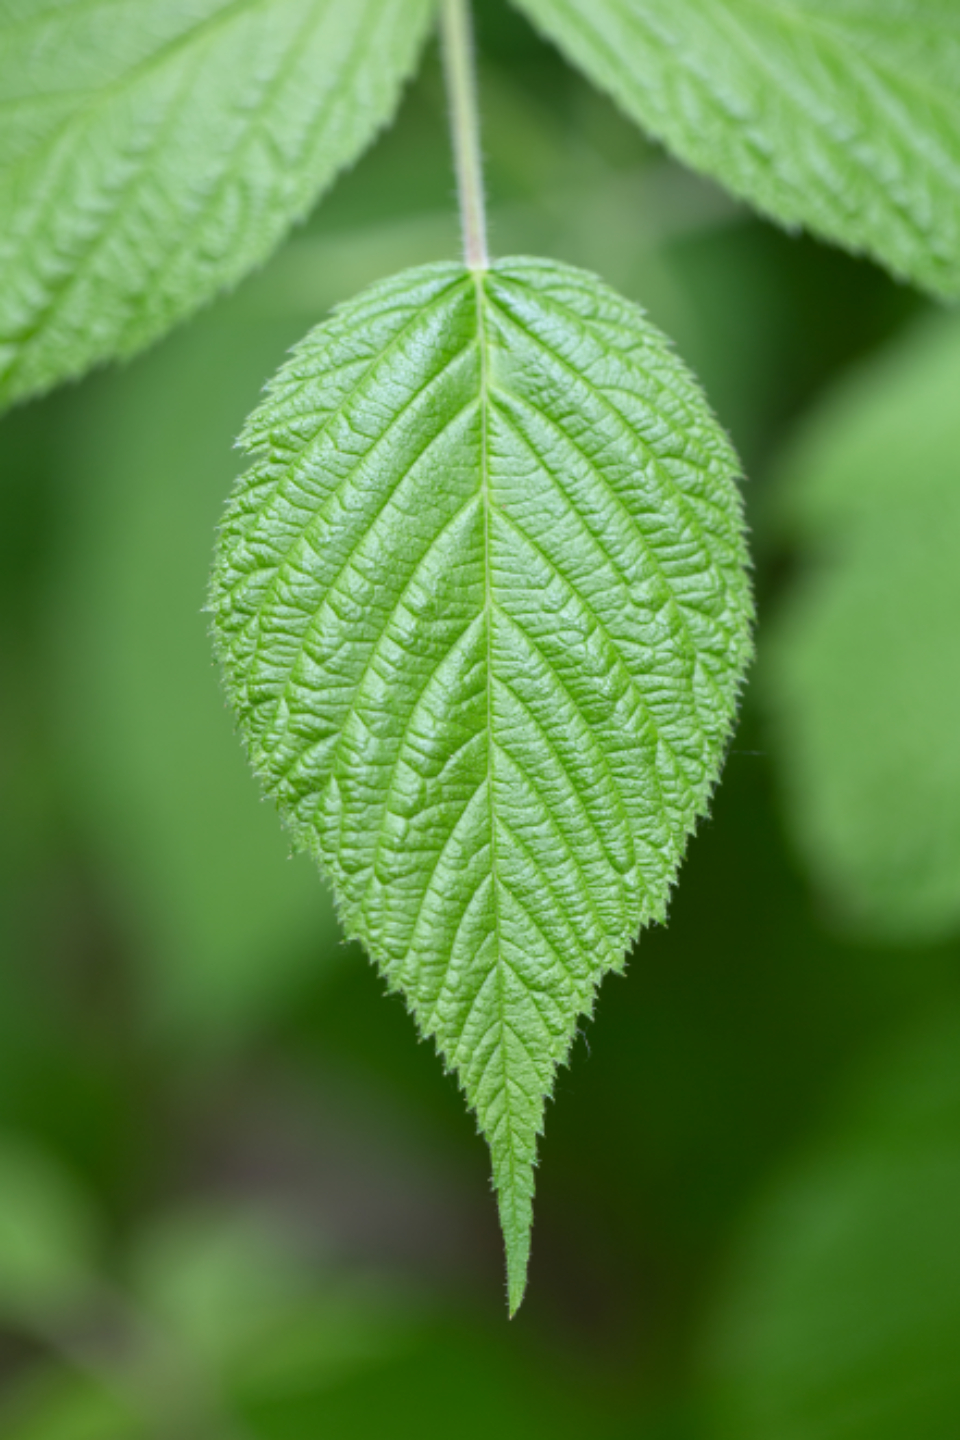 macro plant leaf natural texture nature leaves green background growth close up pattern forest mobile wallpaper trees